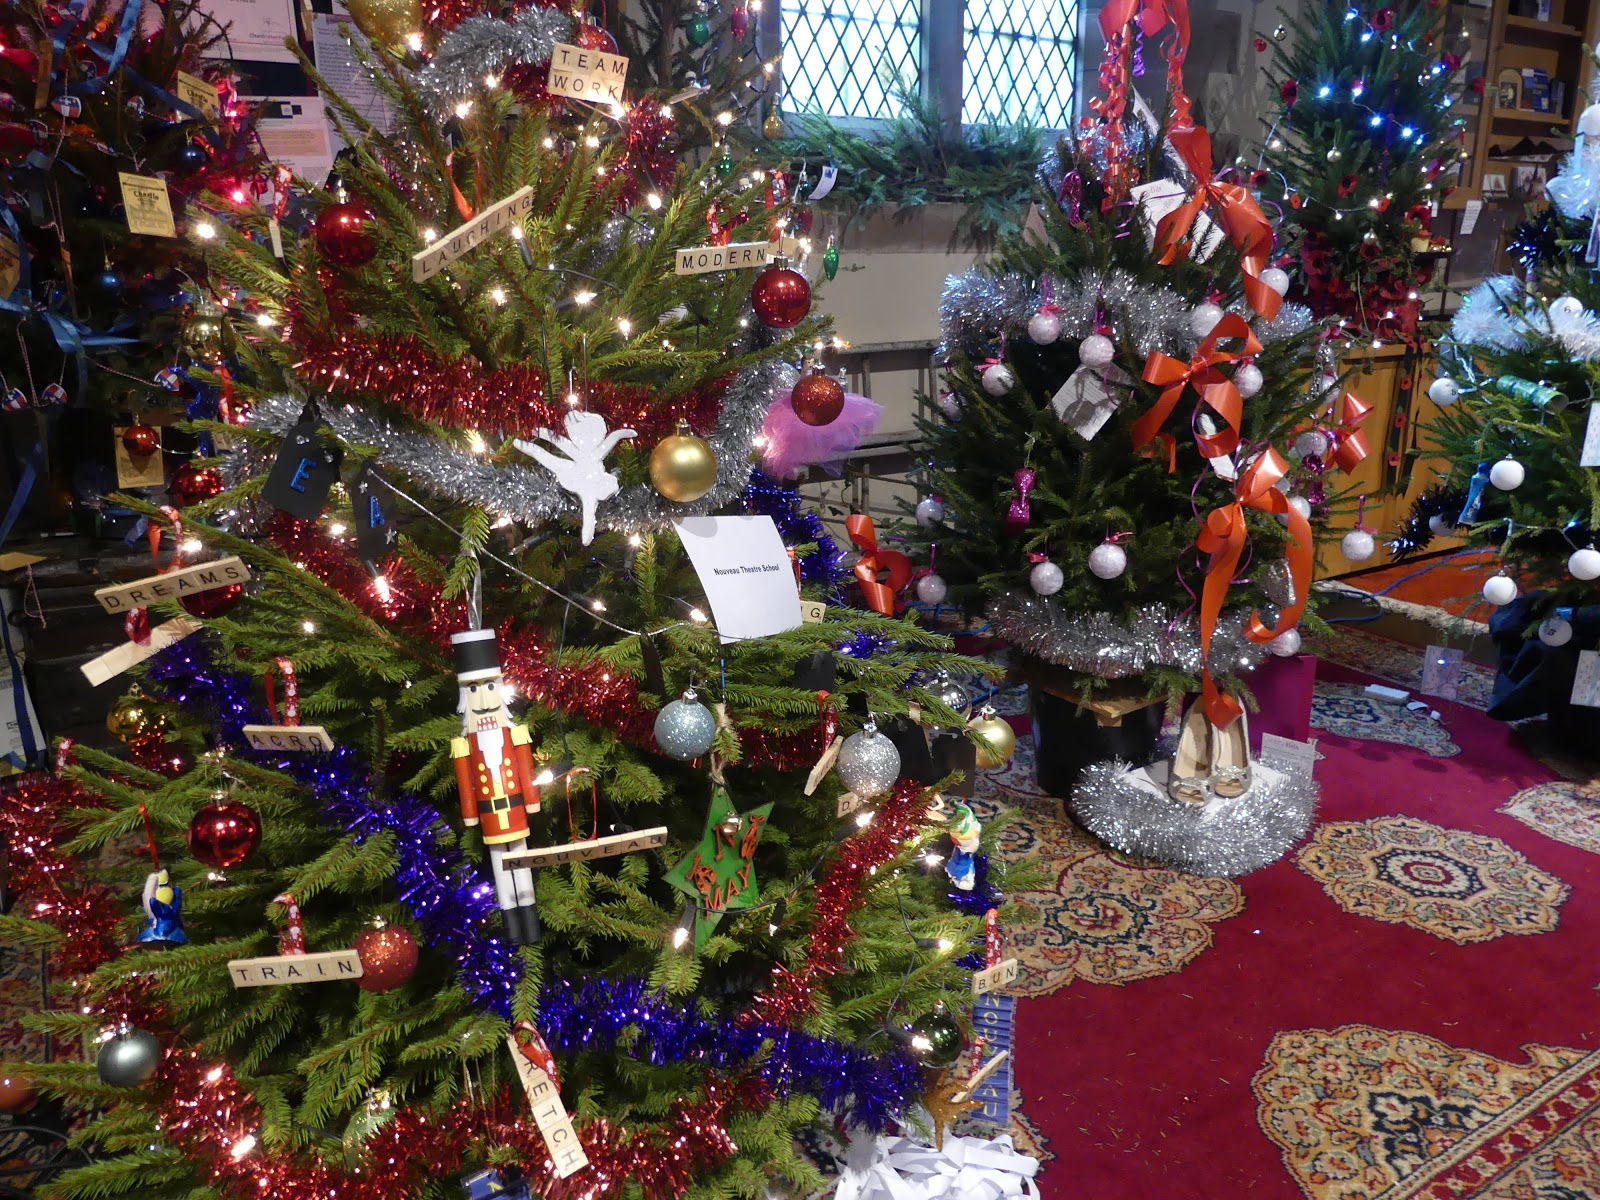 Elsewhere In The Church There Were Around 30 Decorated Real Christmas Trees.